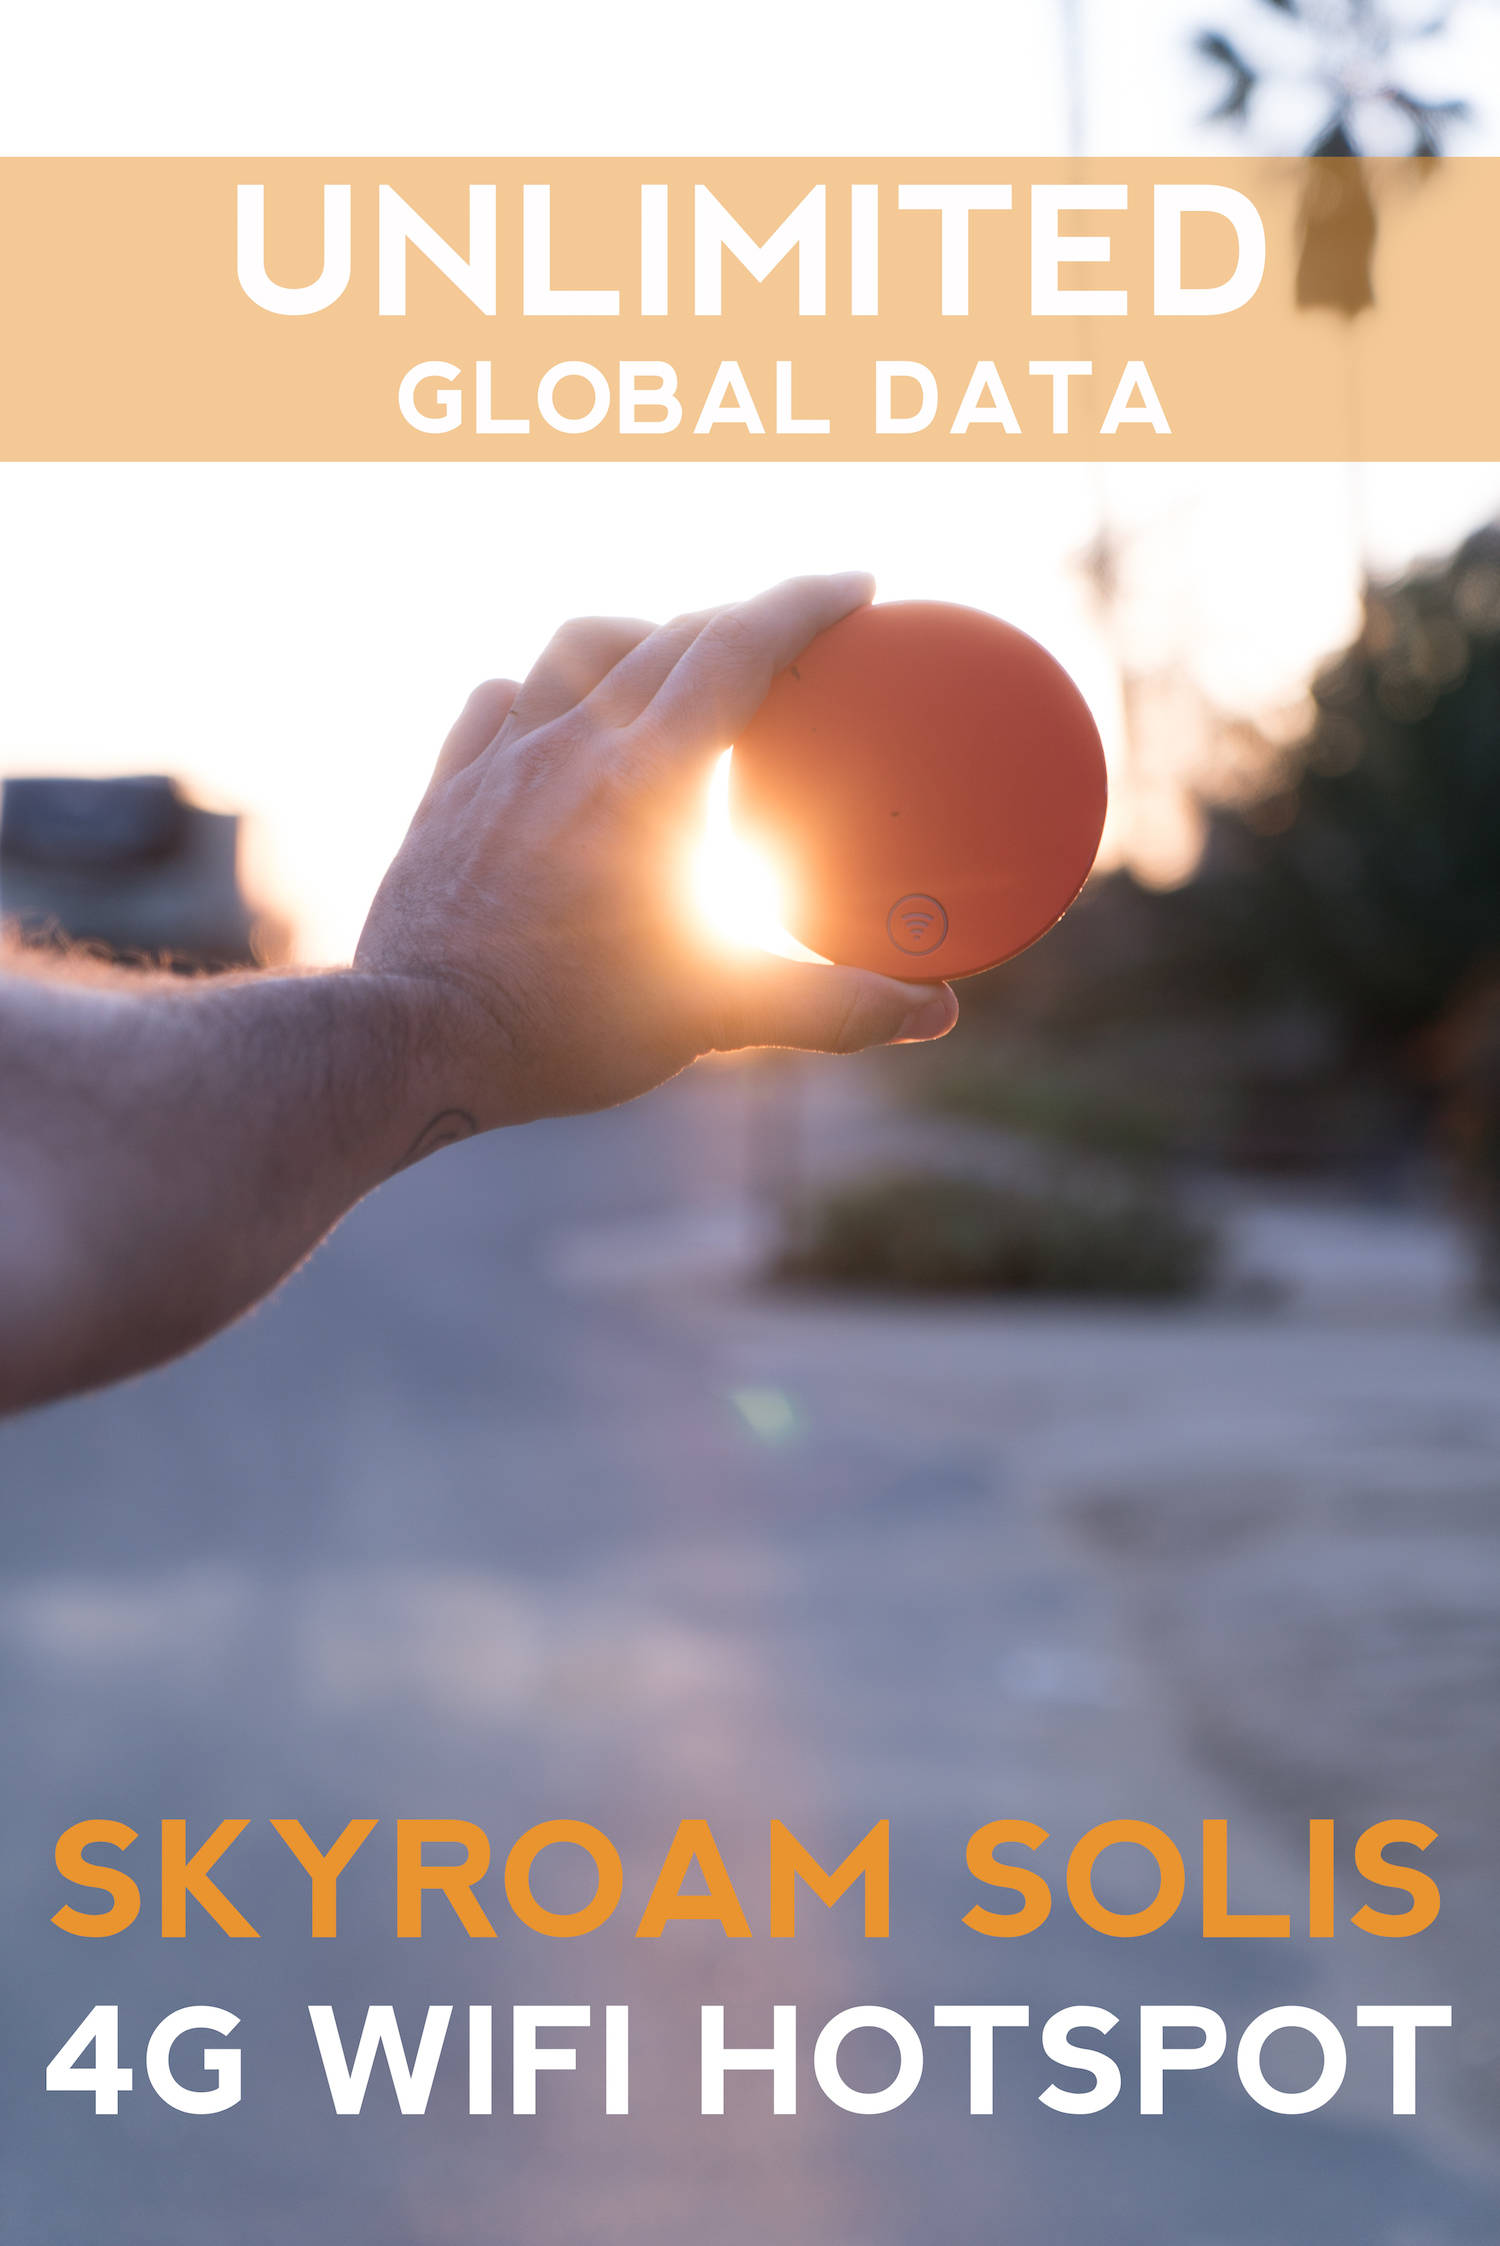 Unlimited Global Data Skyroam Solis 4g Wifi Hotspot